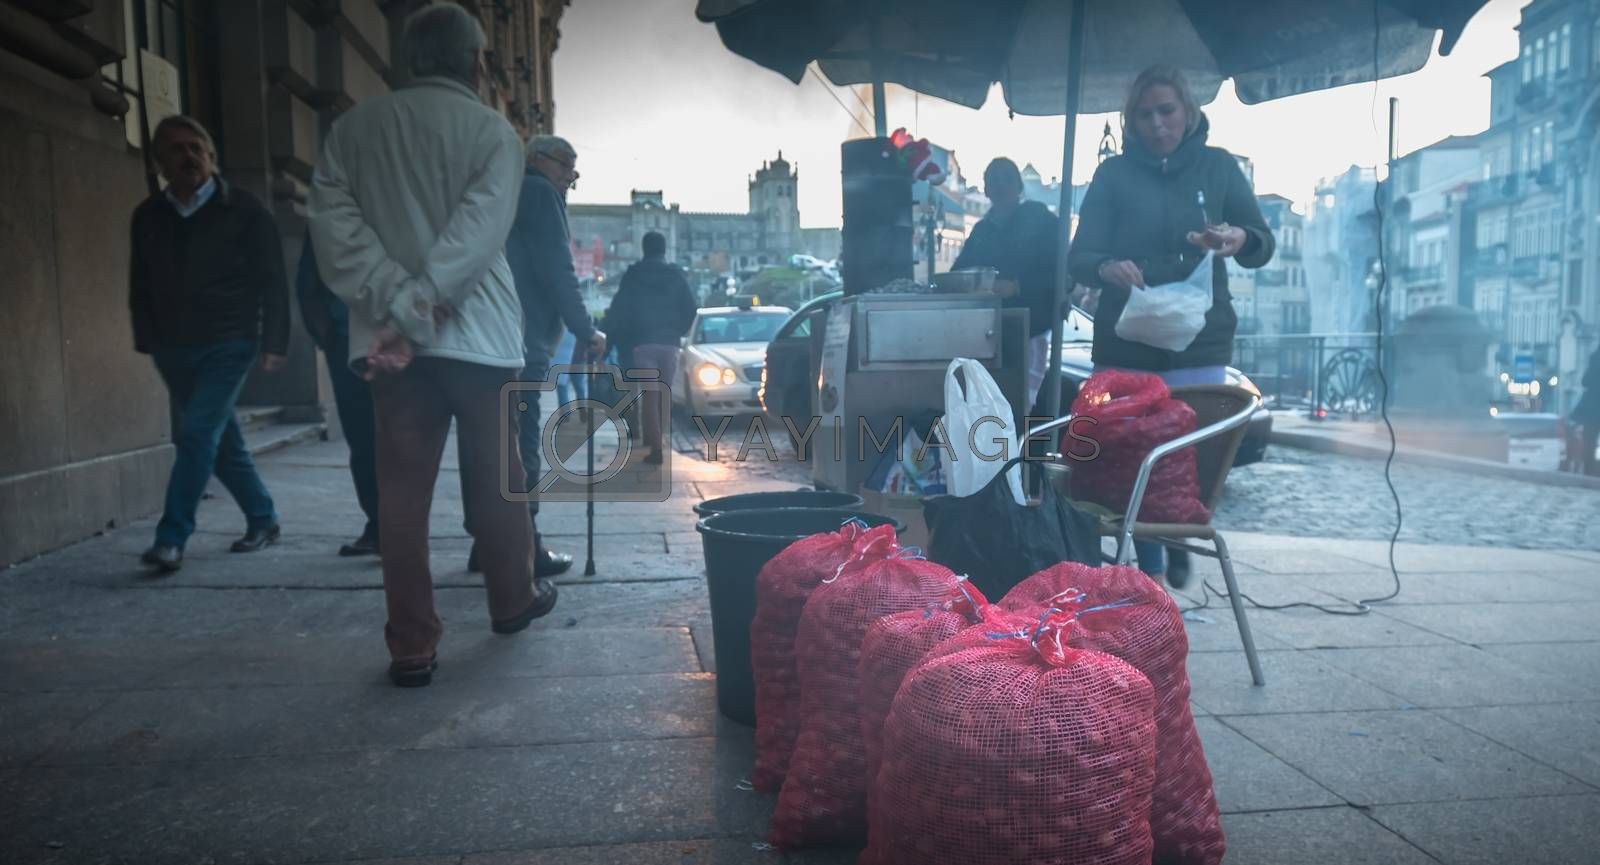 Porto, Portugal - 30 November 2018: Street vendors of roasted chestnuts in front of Sao Bento station in the city center on a fall day